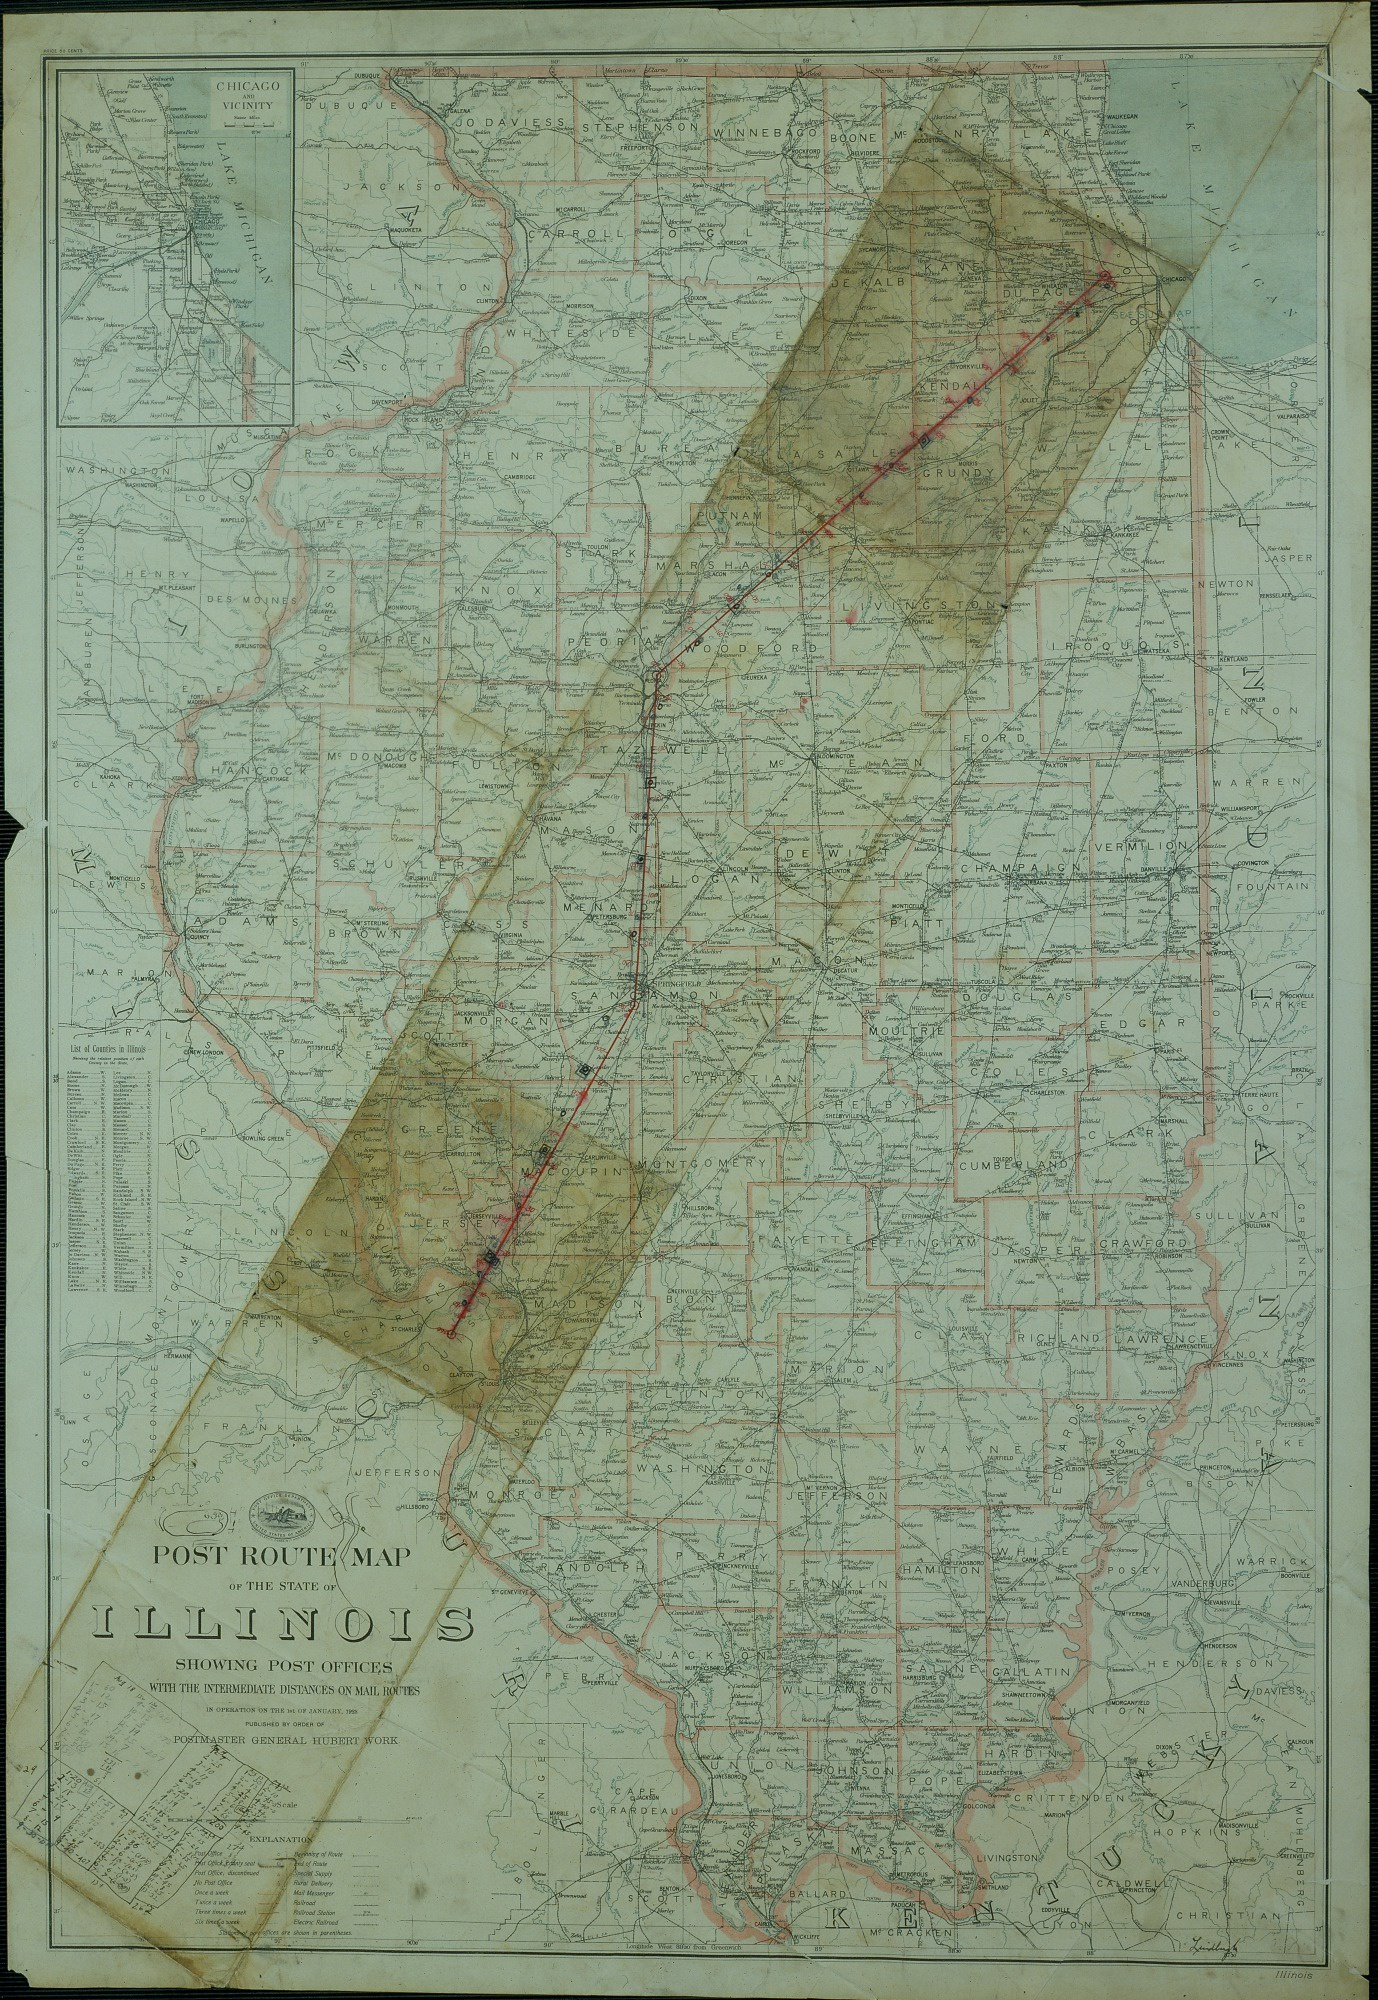 Post Route Map of the State of Illinois, U. S. Post Office, 1923